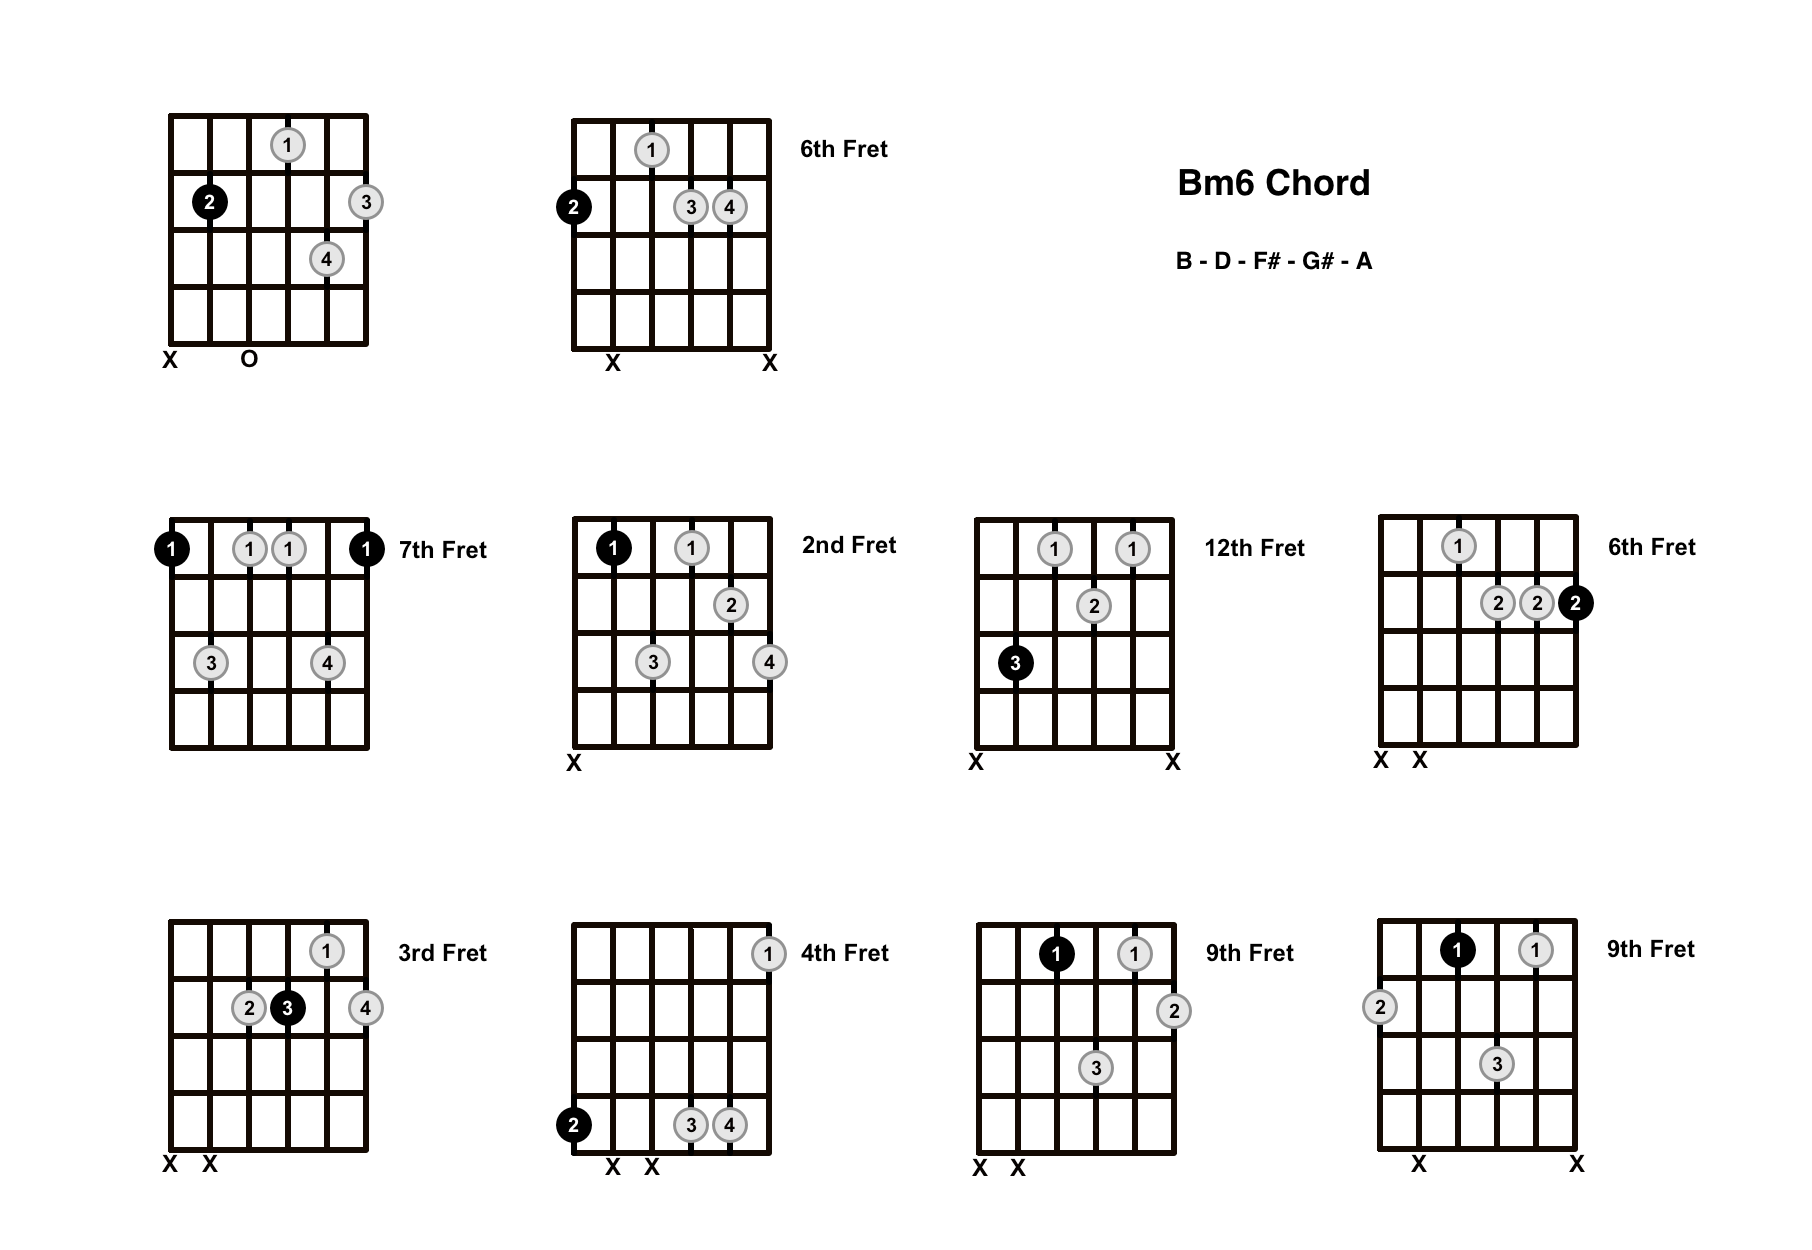 Bm6 Chord On The Guitar (B minor 6) – Diagrams, Finger Positions and Theory